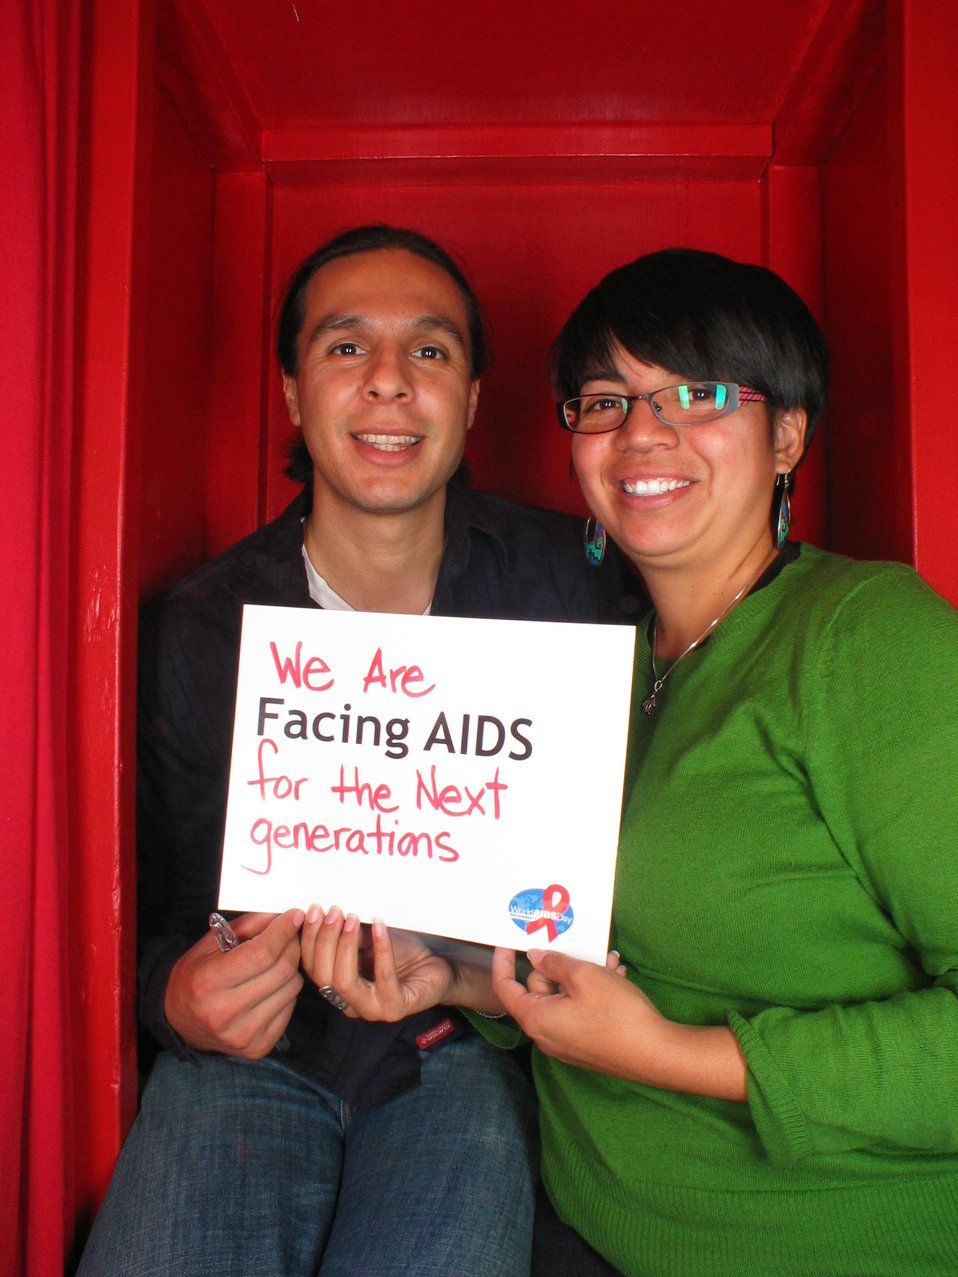 We are Facing AIDS for the next generations.